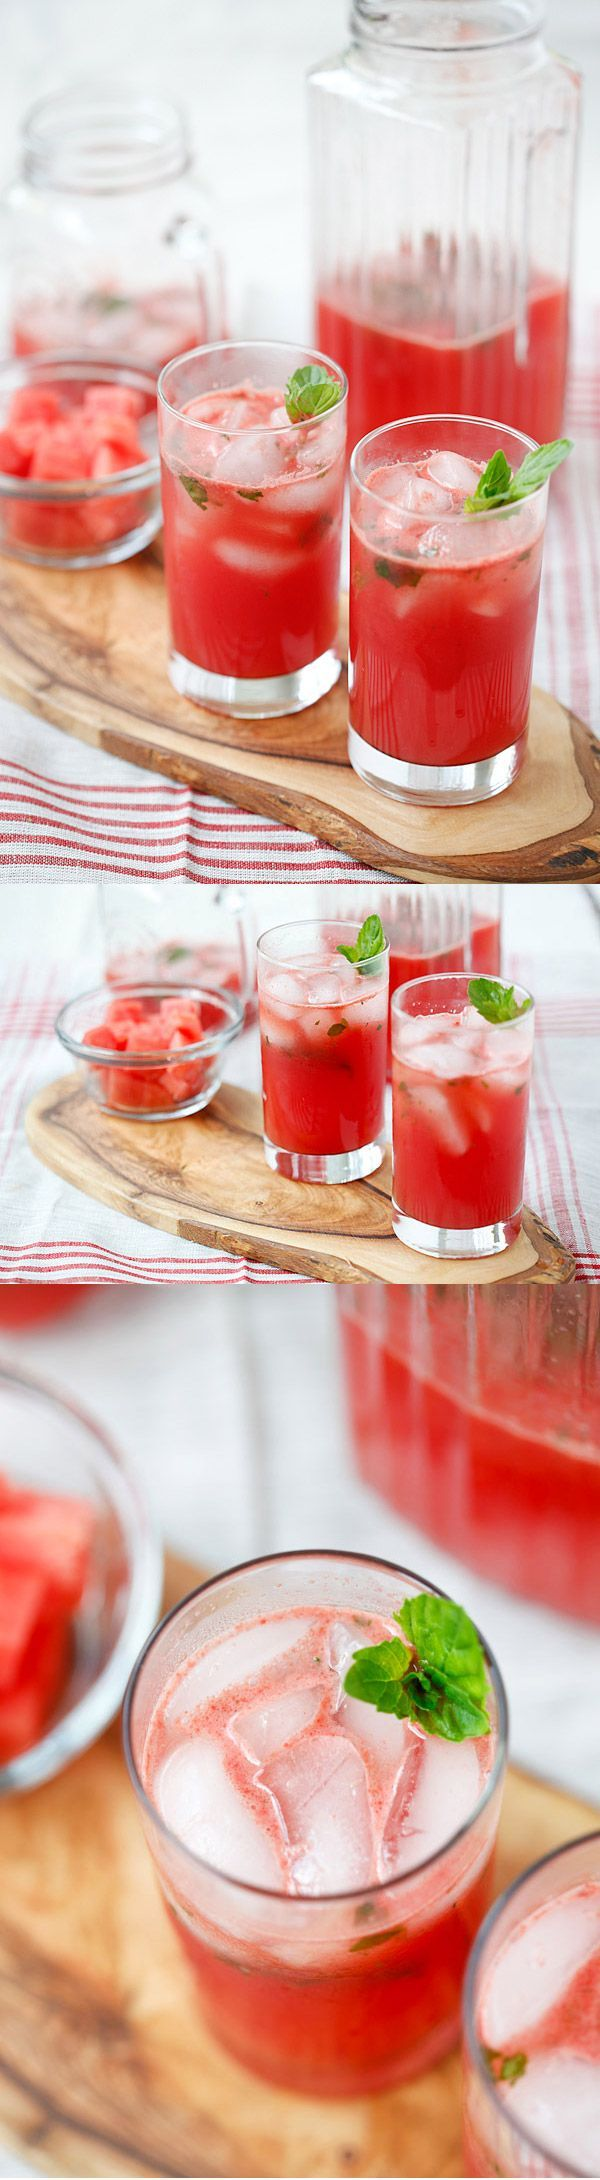 Watermelon Tequila Cocktail #watermelon #tequila #cocktail